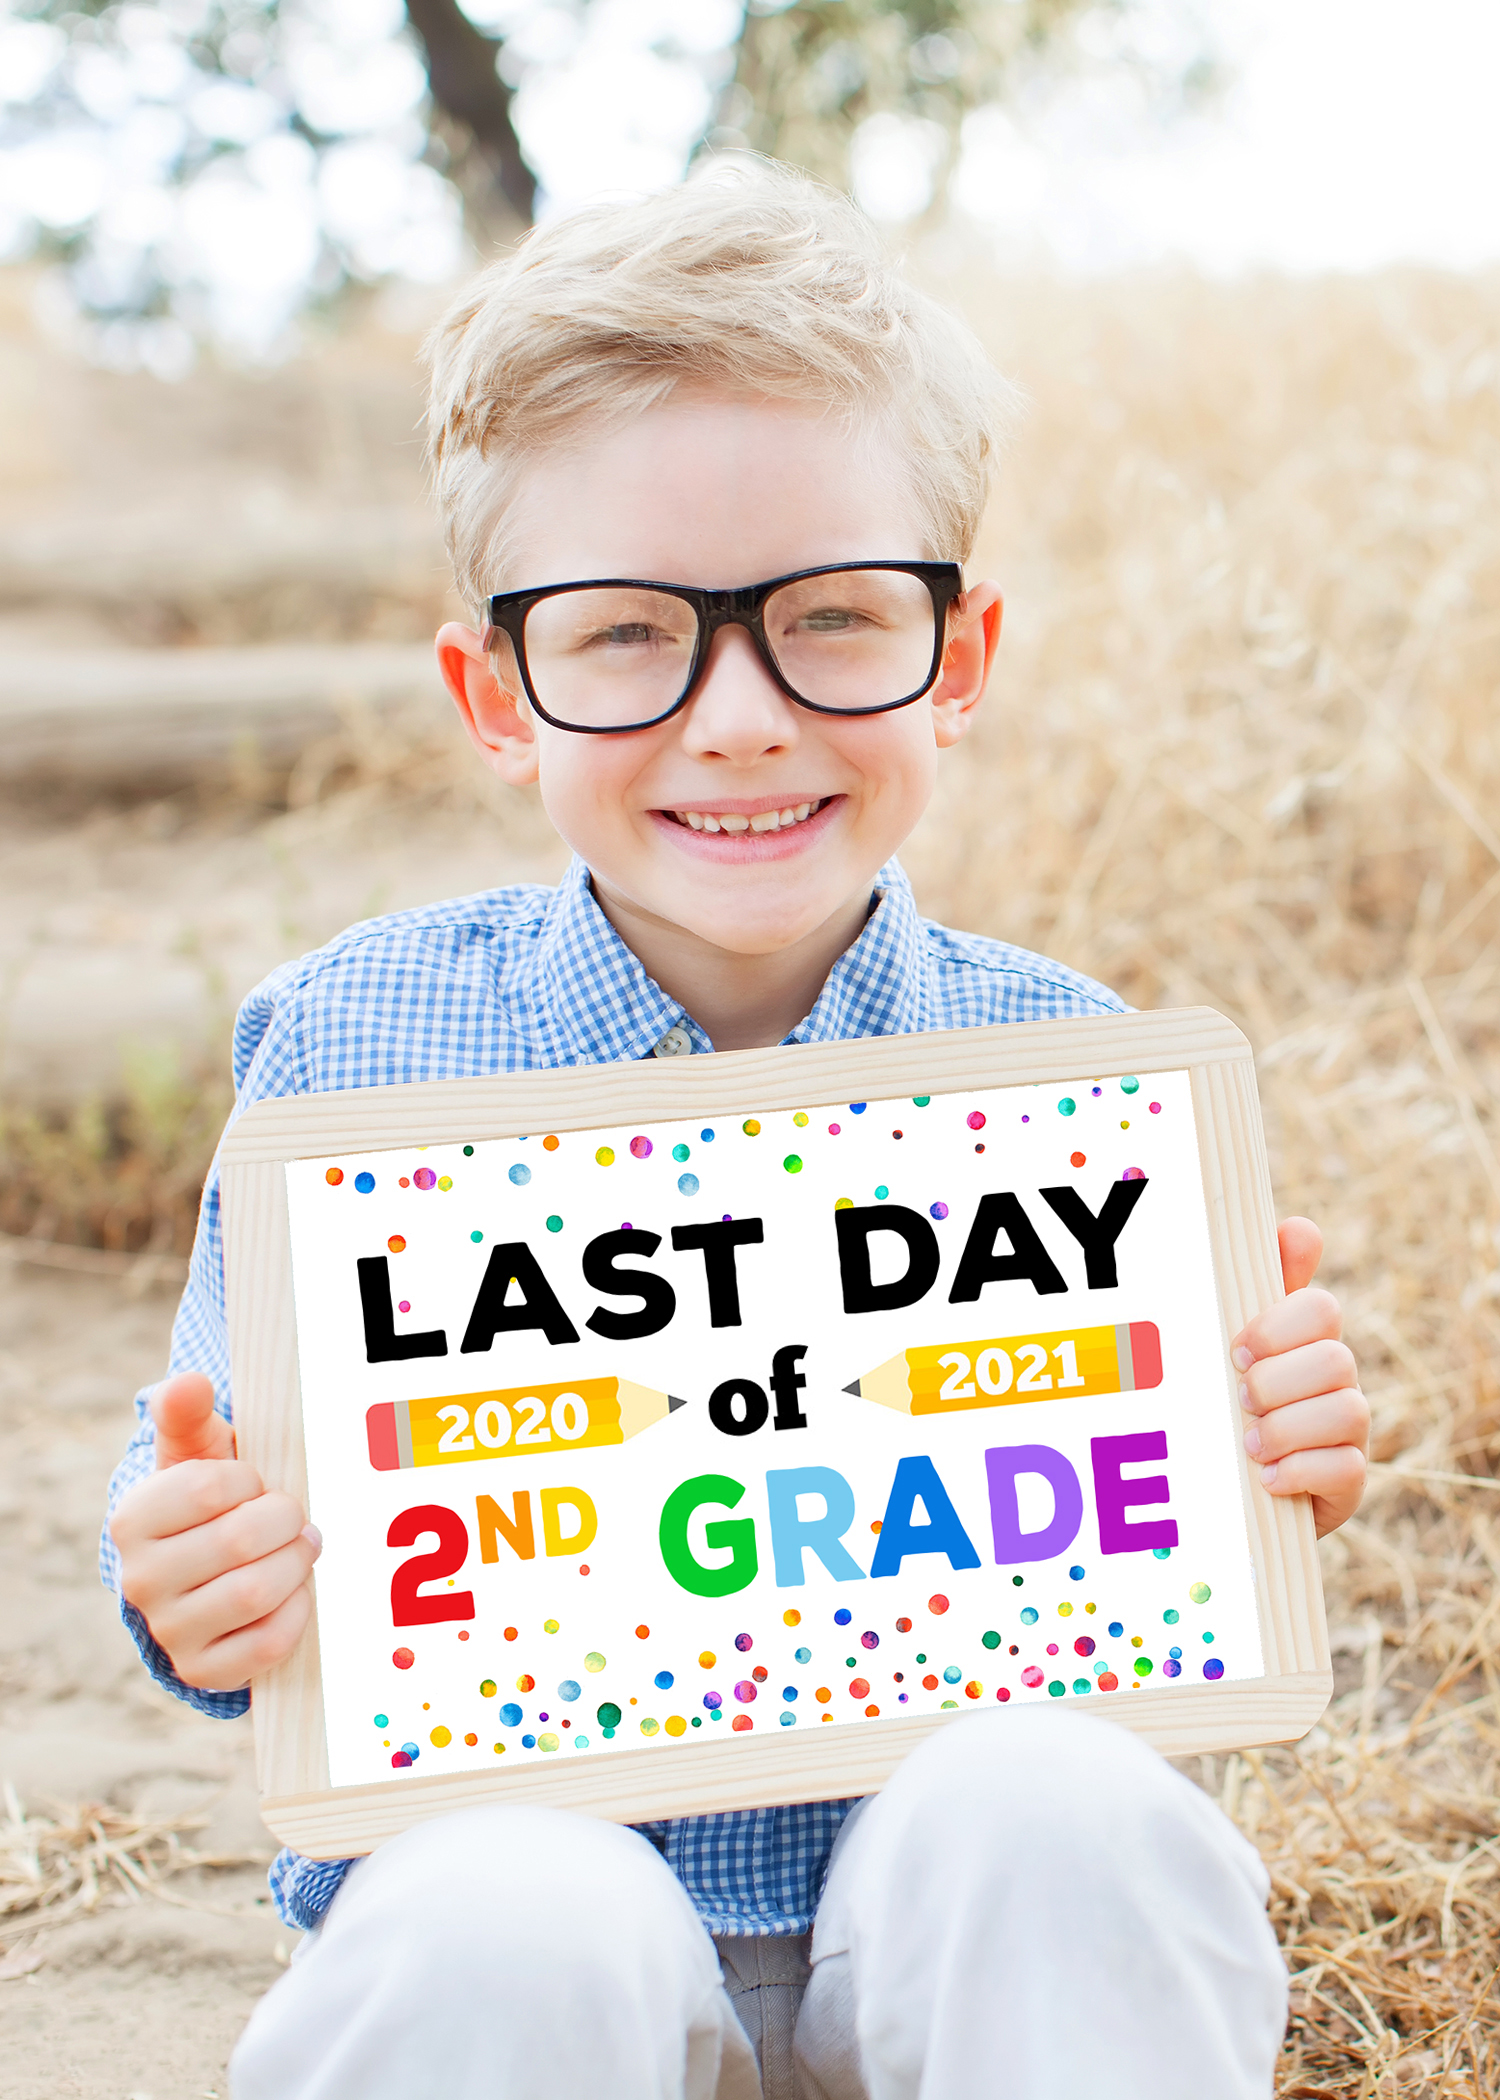 Blonde boy with glasses holding a Last Day of School sign